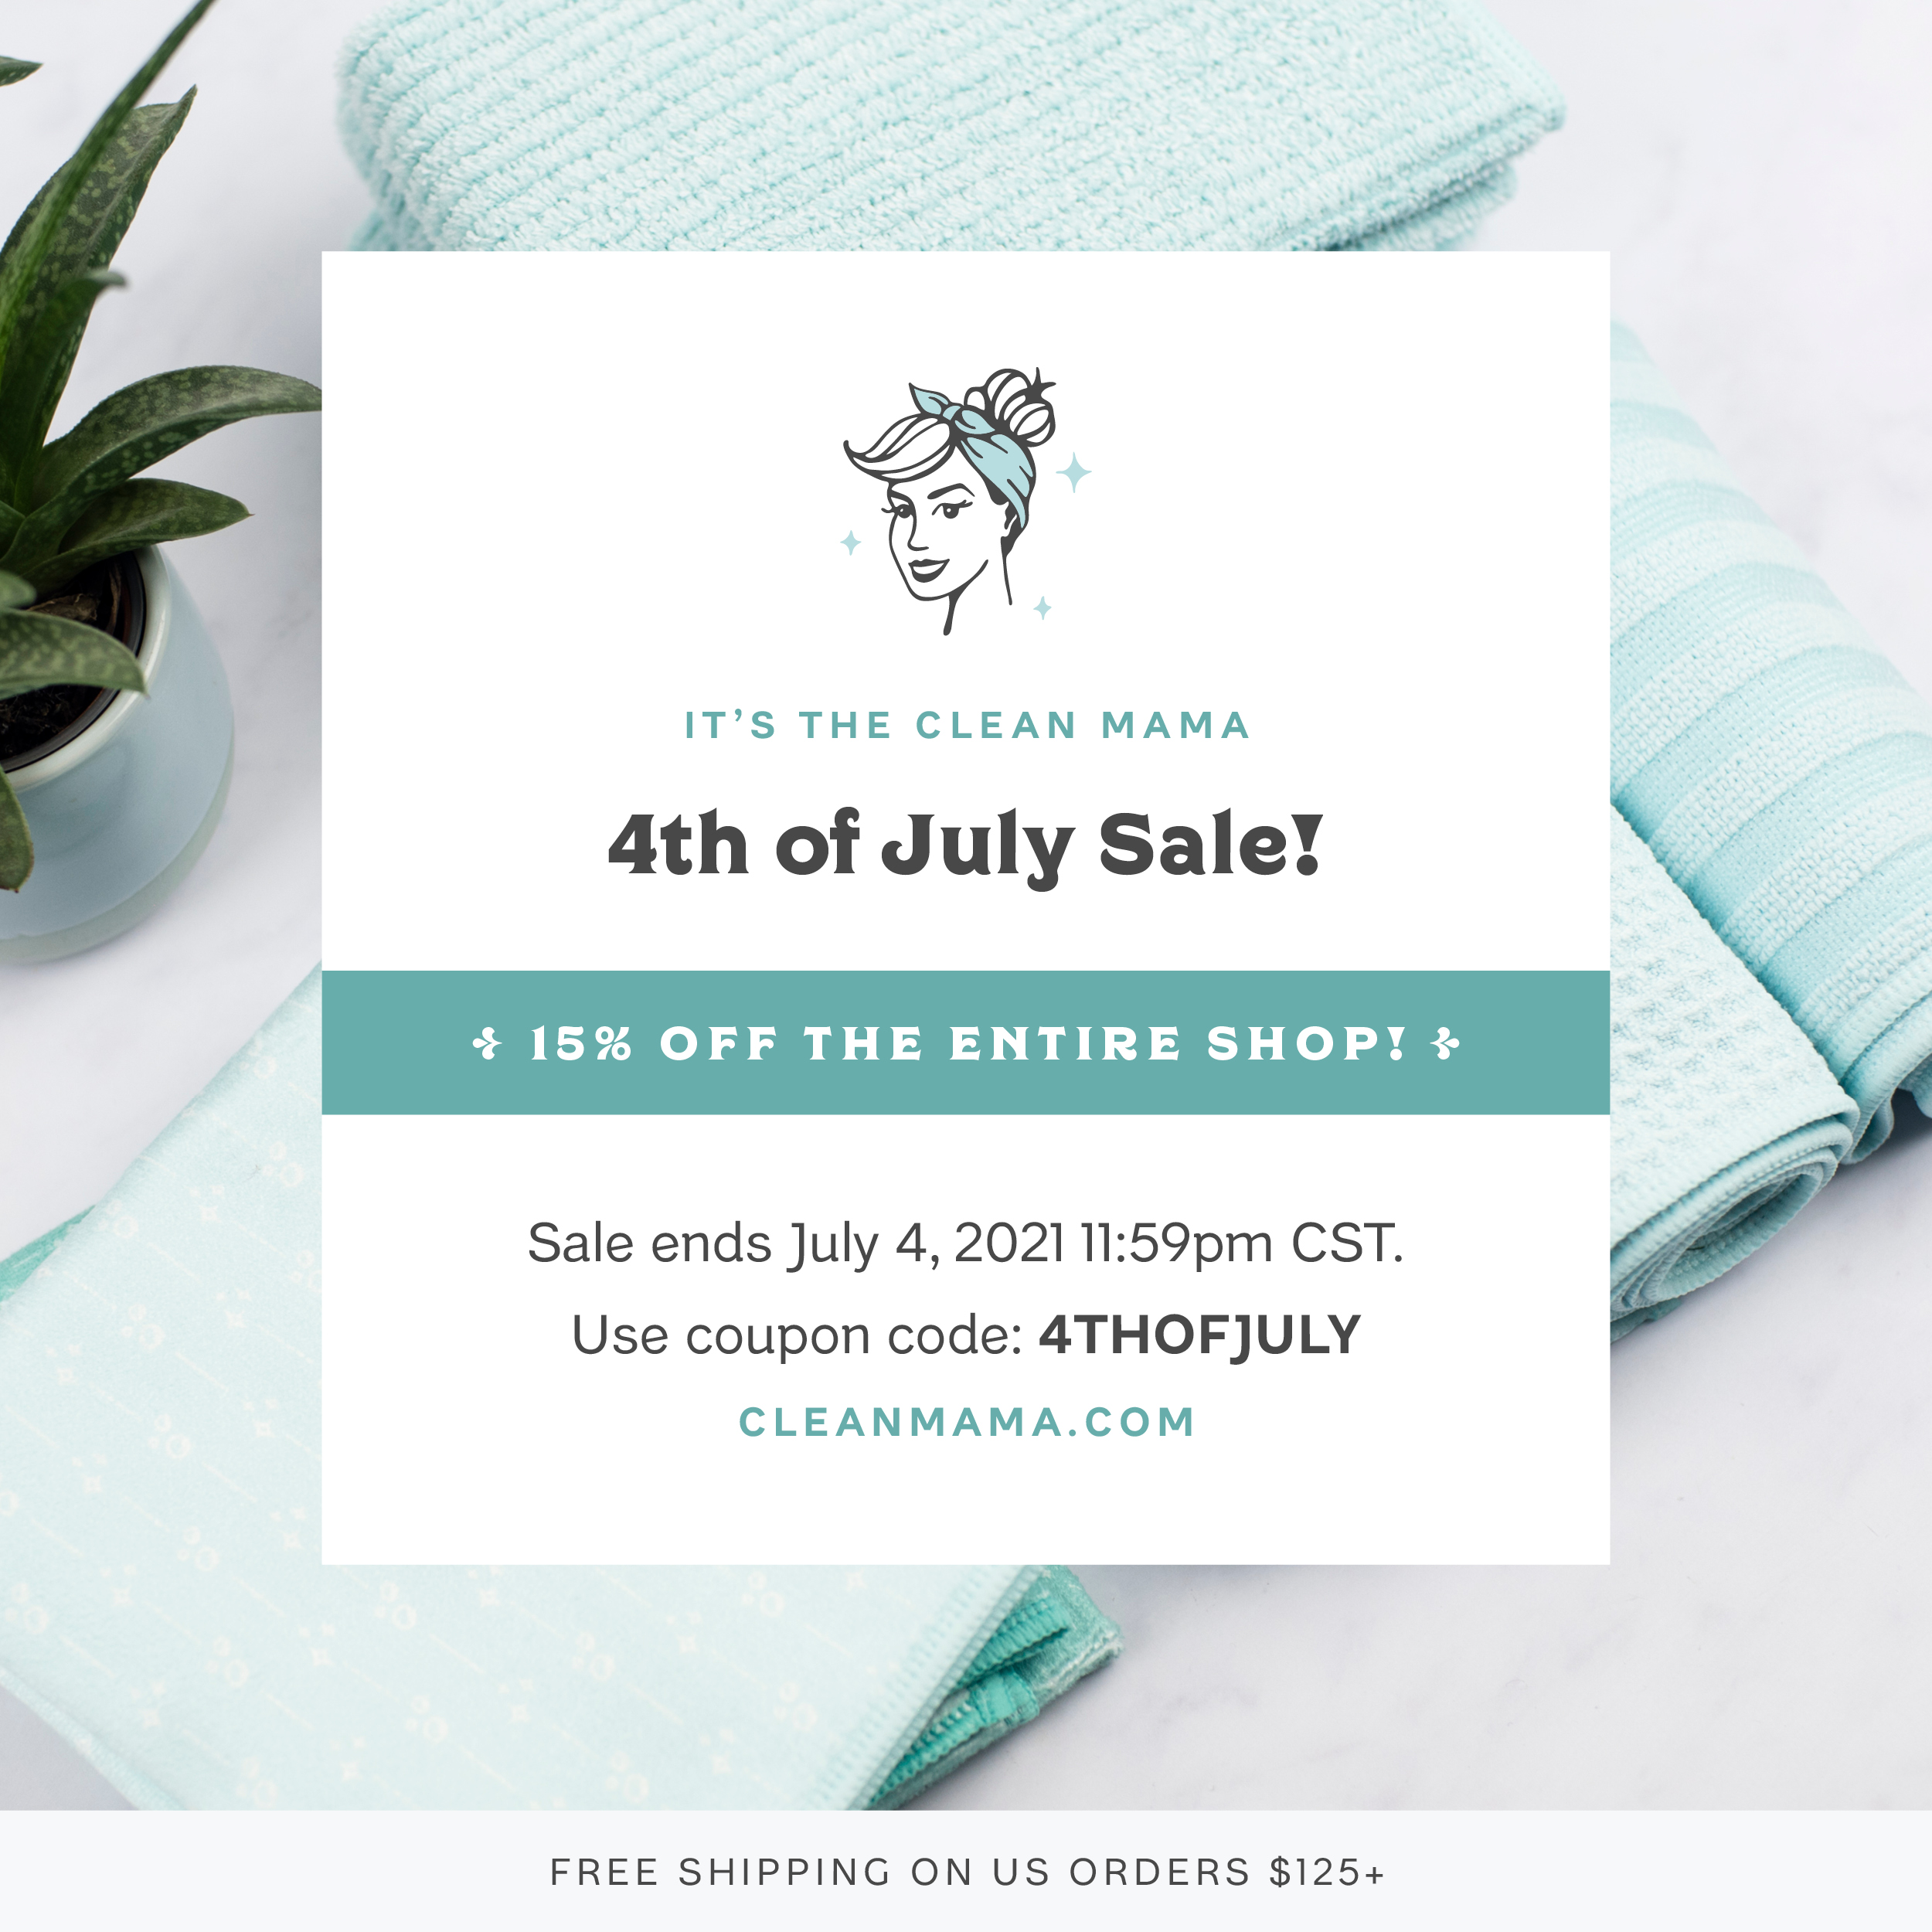 It's the 4th of July Sale! 15% off the entire shop! – Clean Mama